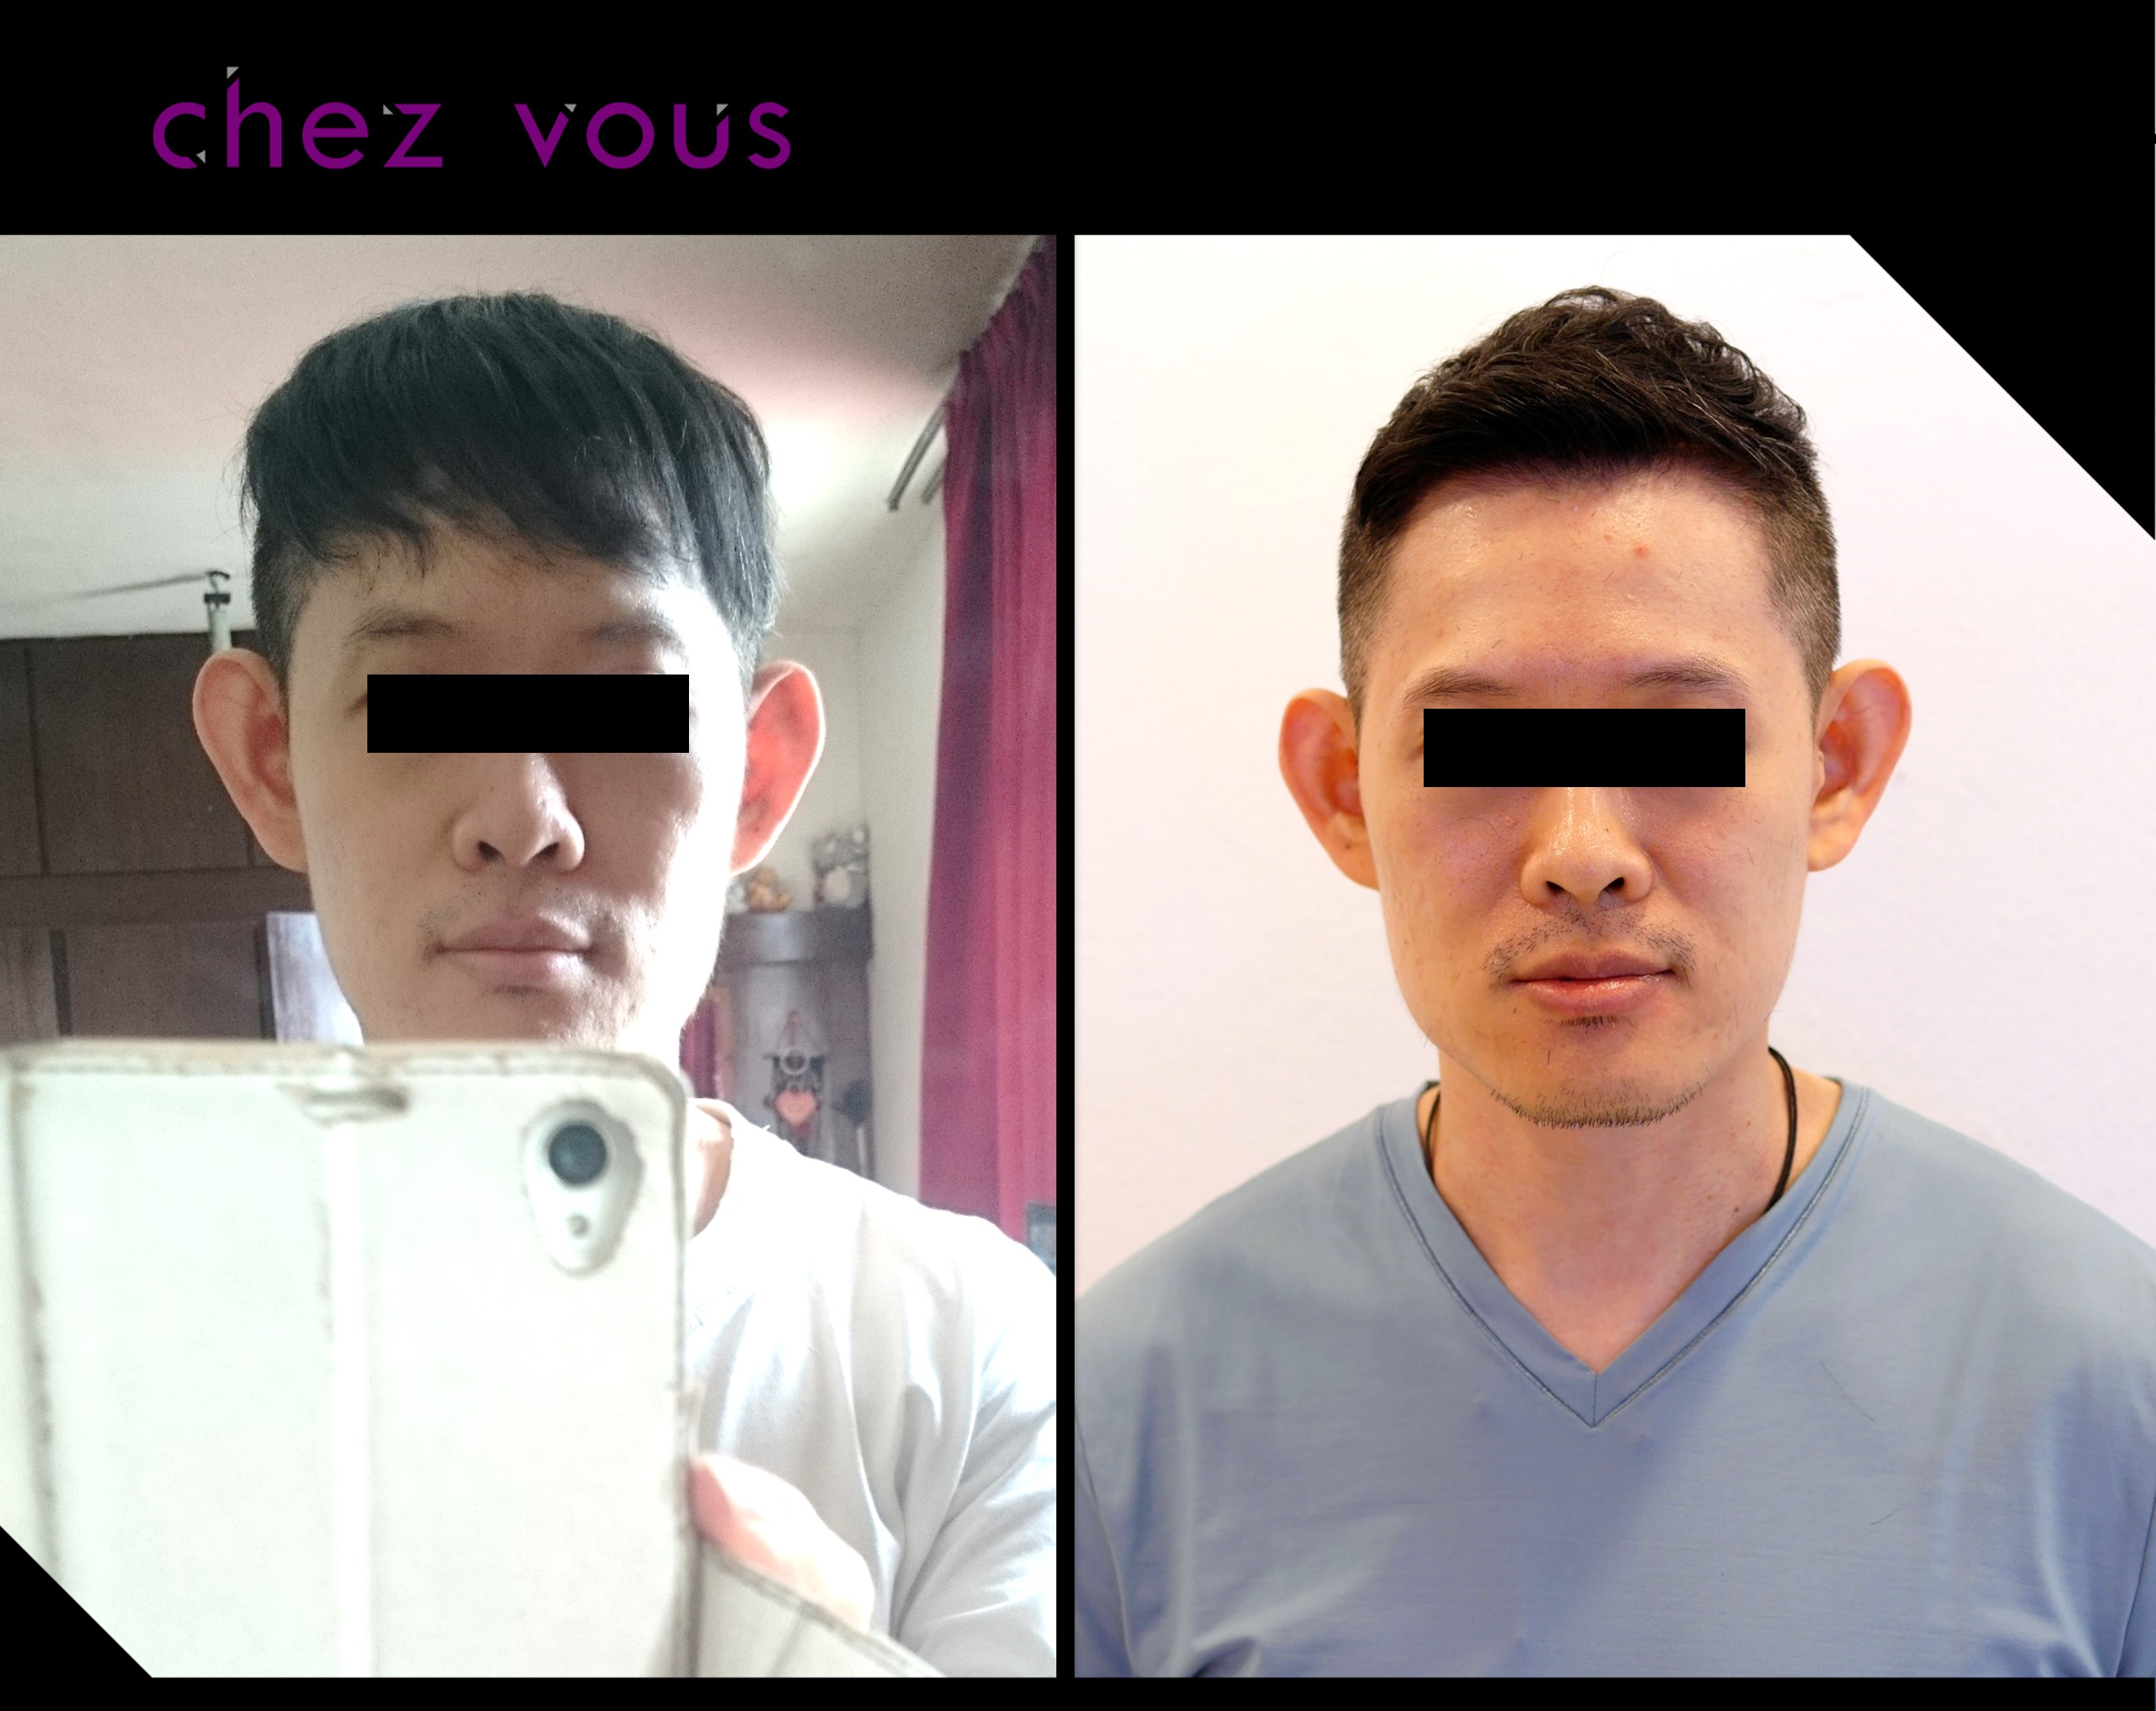 Men's Haircut and Perm (Oscar) Before and After at Chez Vous